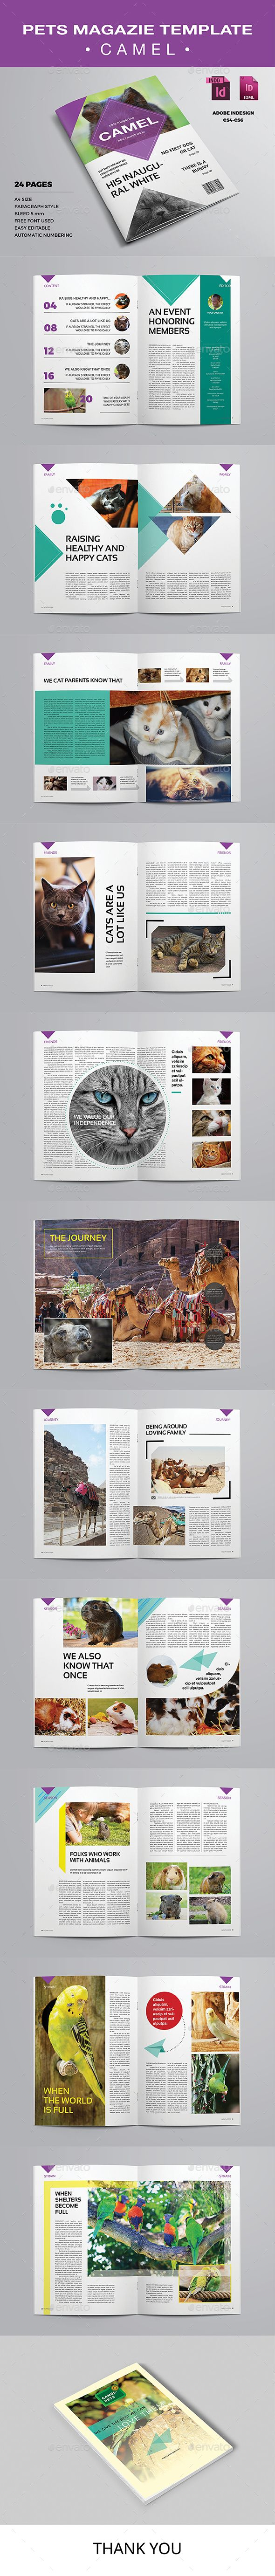 Pets Magazine Template - Camel by malikjazirah01 Pets Magazine Template �20Camel Pets Magazine Template �20Camel, designed using Adobe Indesign format, totaling 24 pages. Minimal an